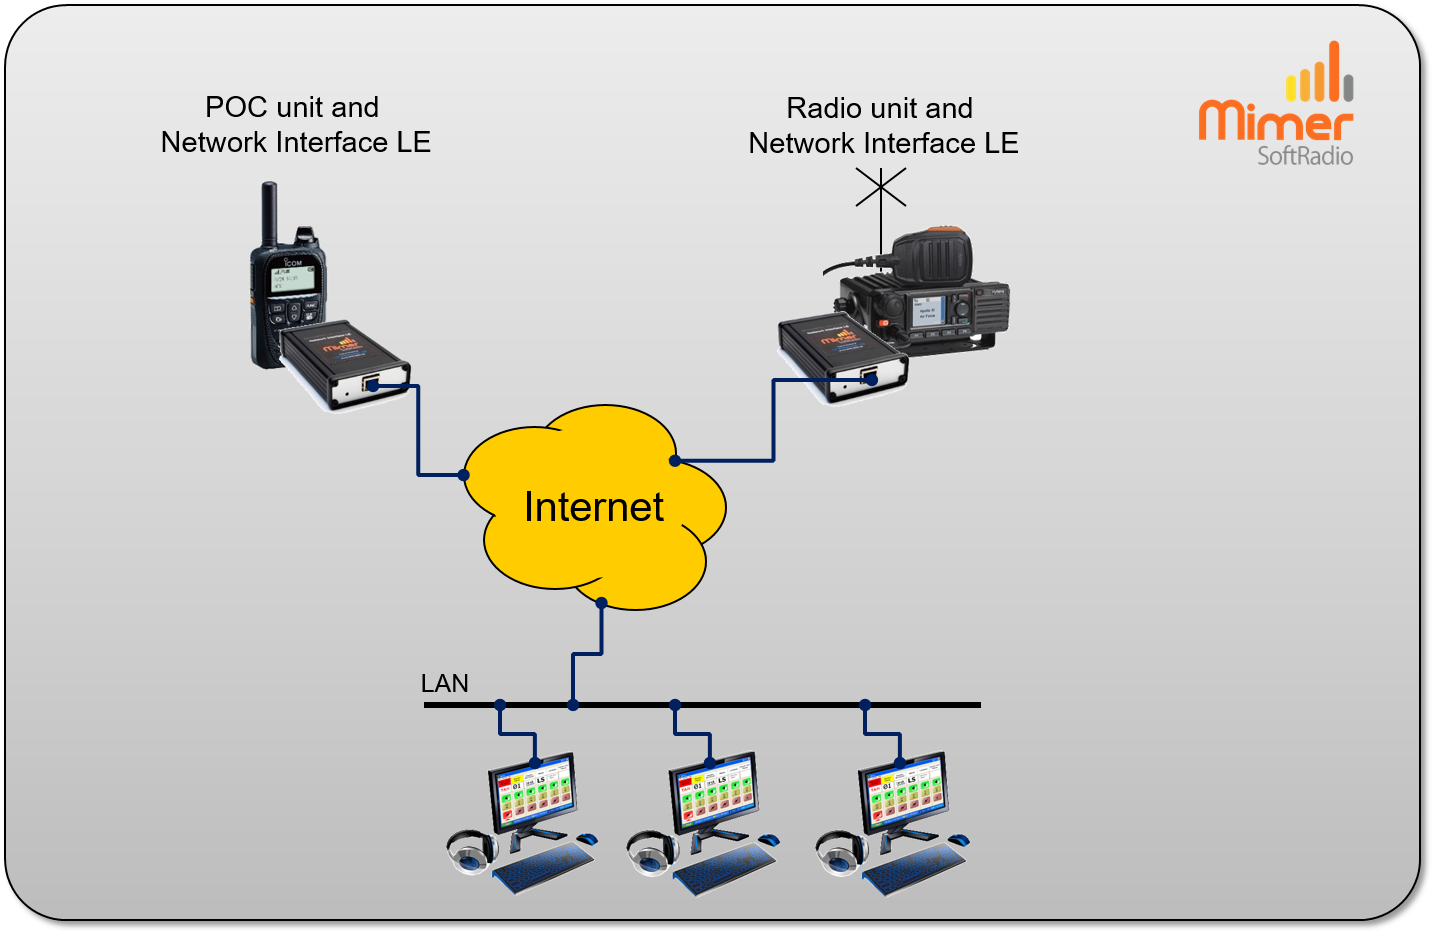 SoftRadio dispatchers connected to both a PoC unit and to a PMR radio.